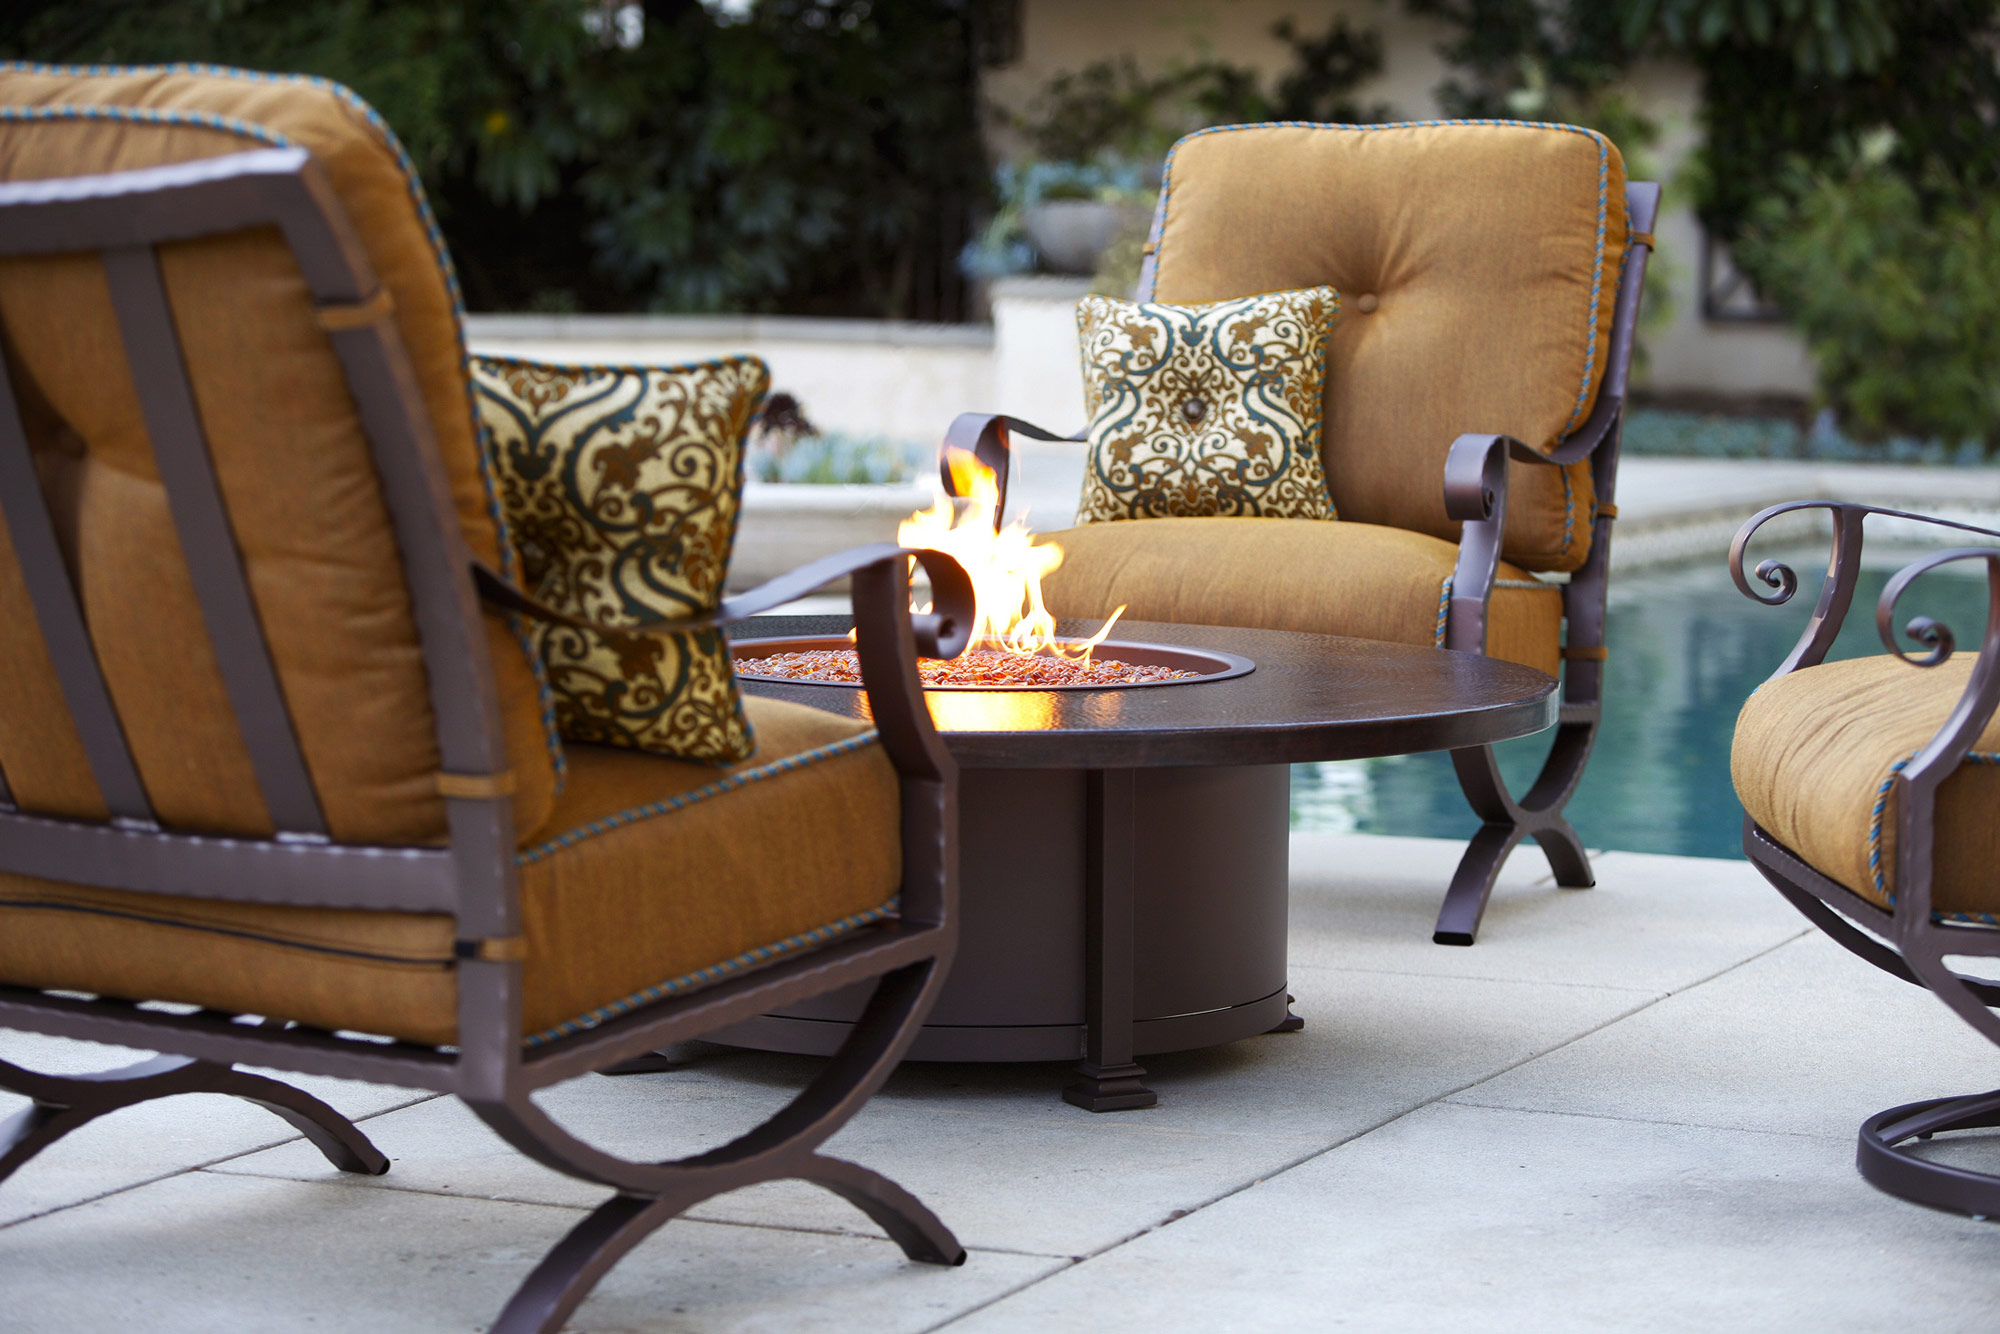 Patio Furniture Los Angeles San Fernando and Conejo Valleys